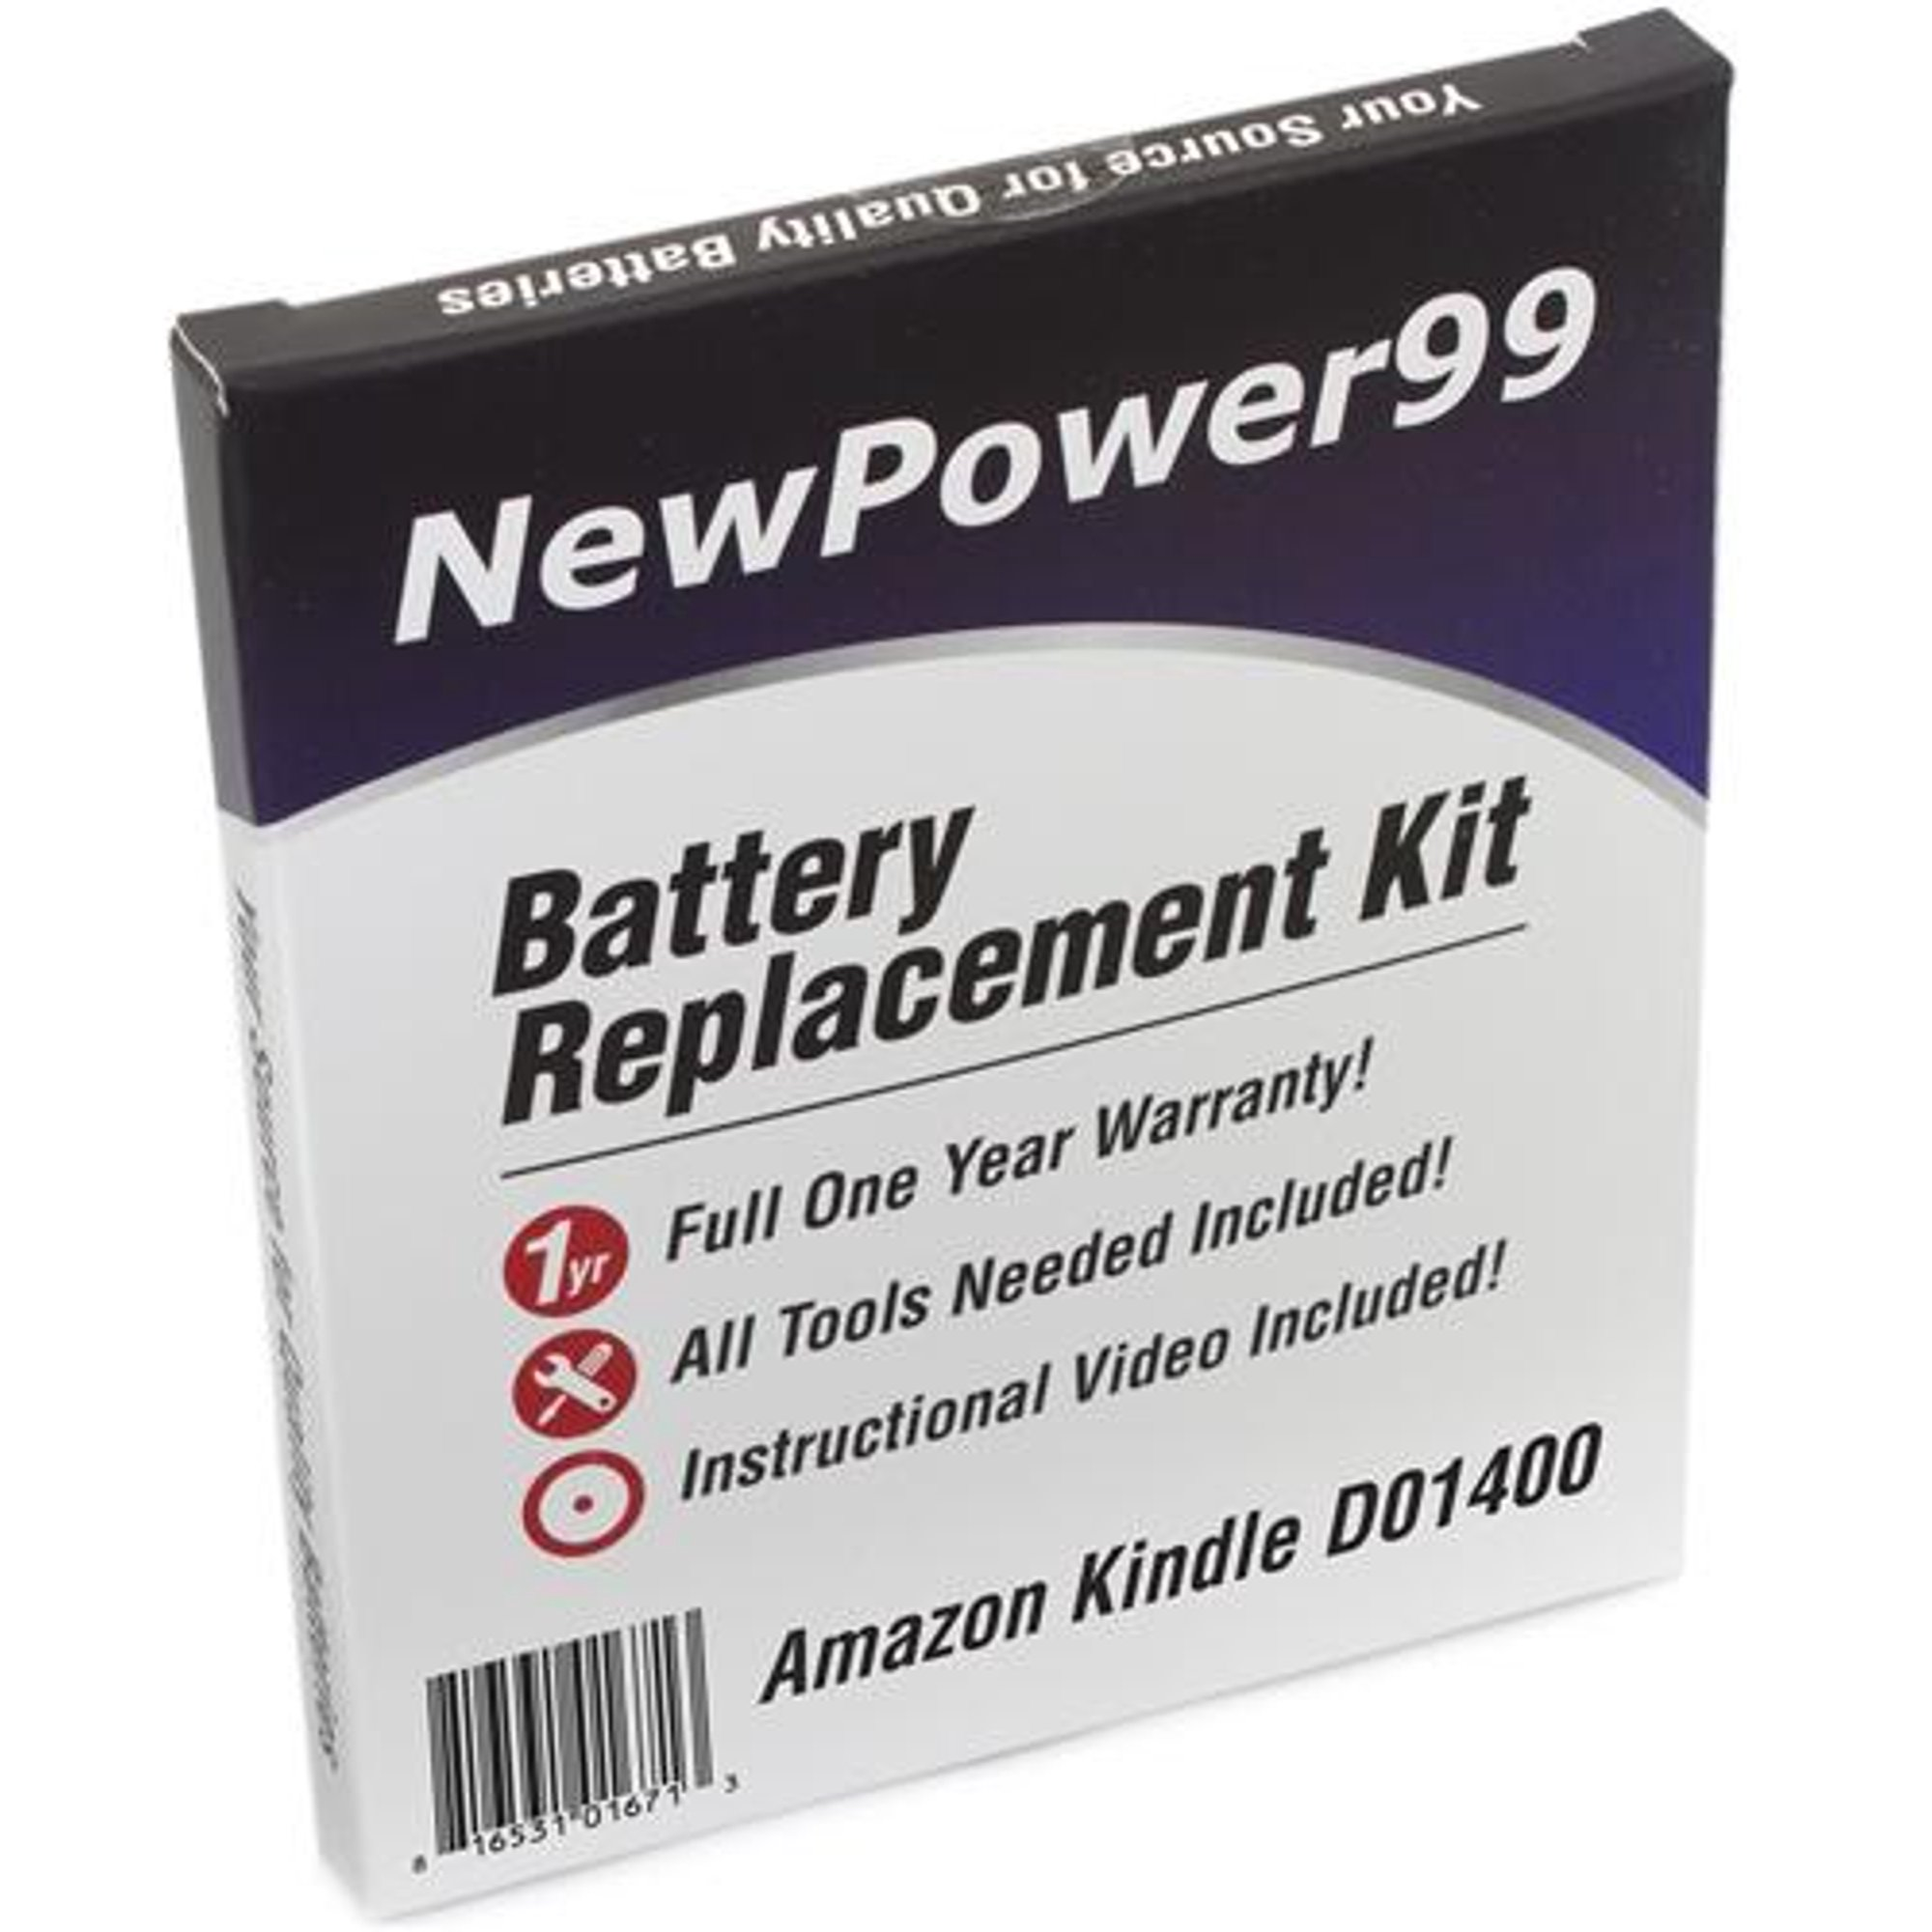 Amazon Kindle Fire D40 Battery Replacement Kit with Tools, Video  Instructions, Extended Life Battery and Full One Year Warranty